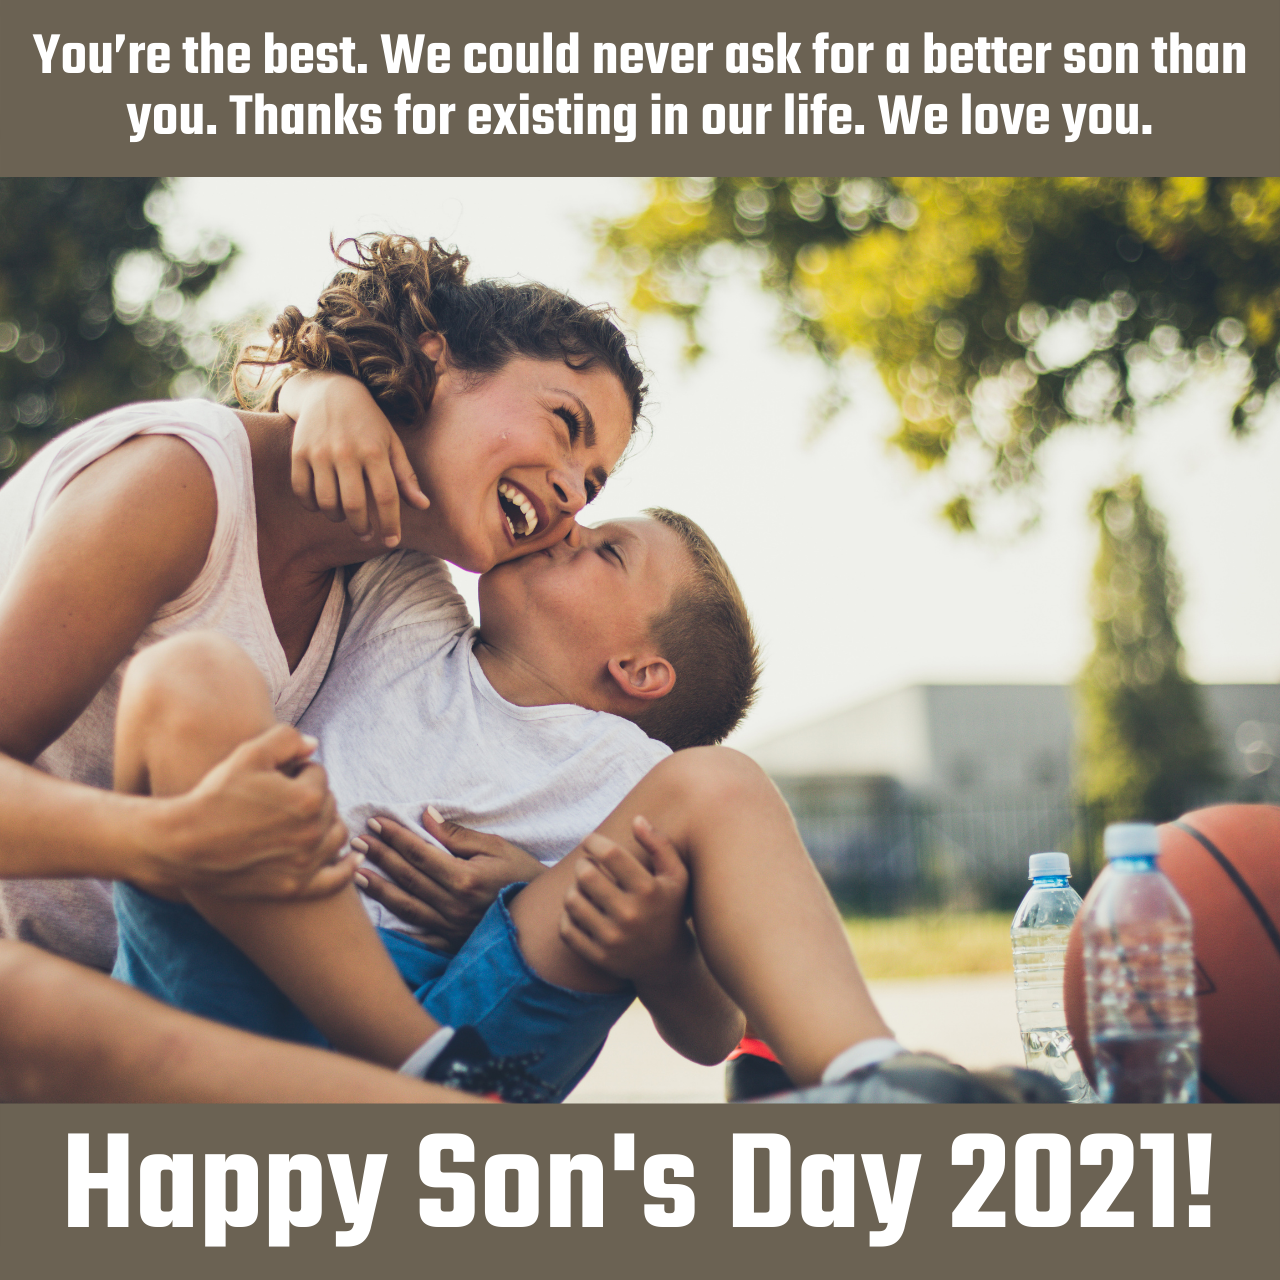 National Sons Day (US) 2021 Greetings, Quotes, Wishes, HD Images, and Messages to share